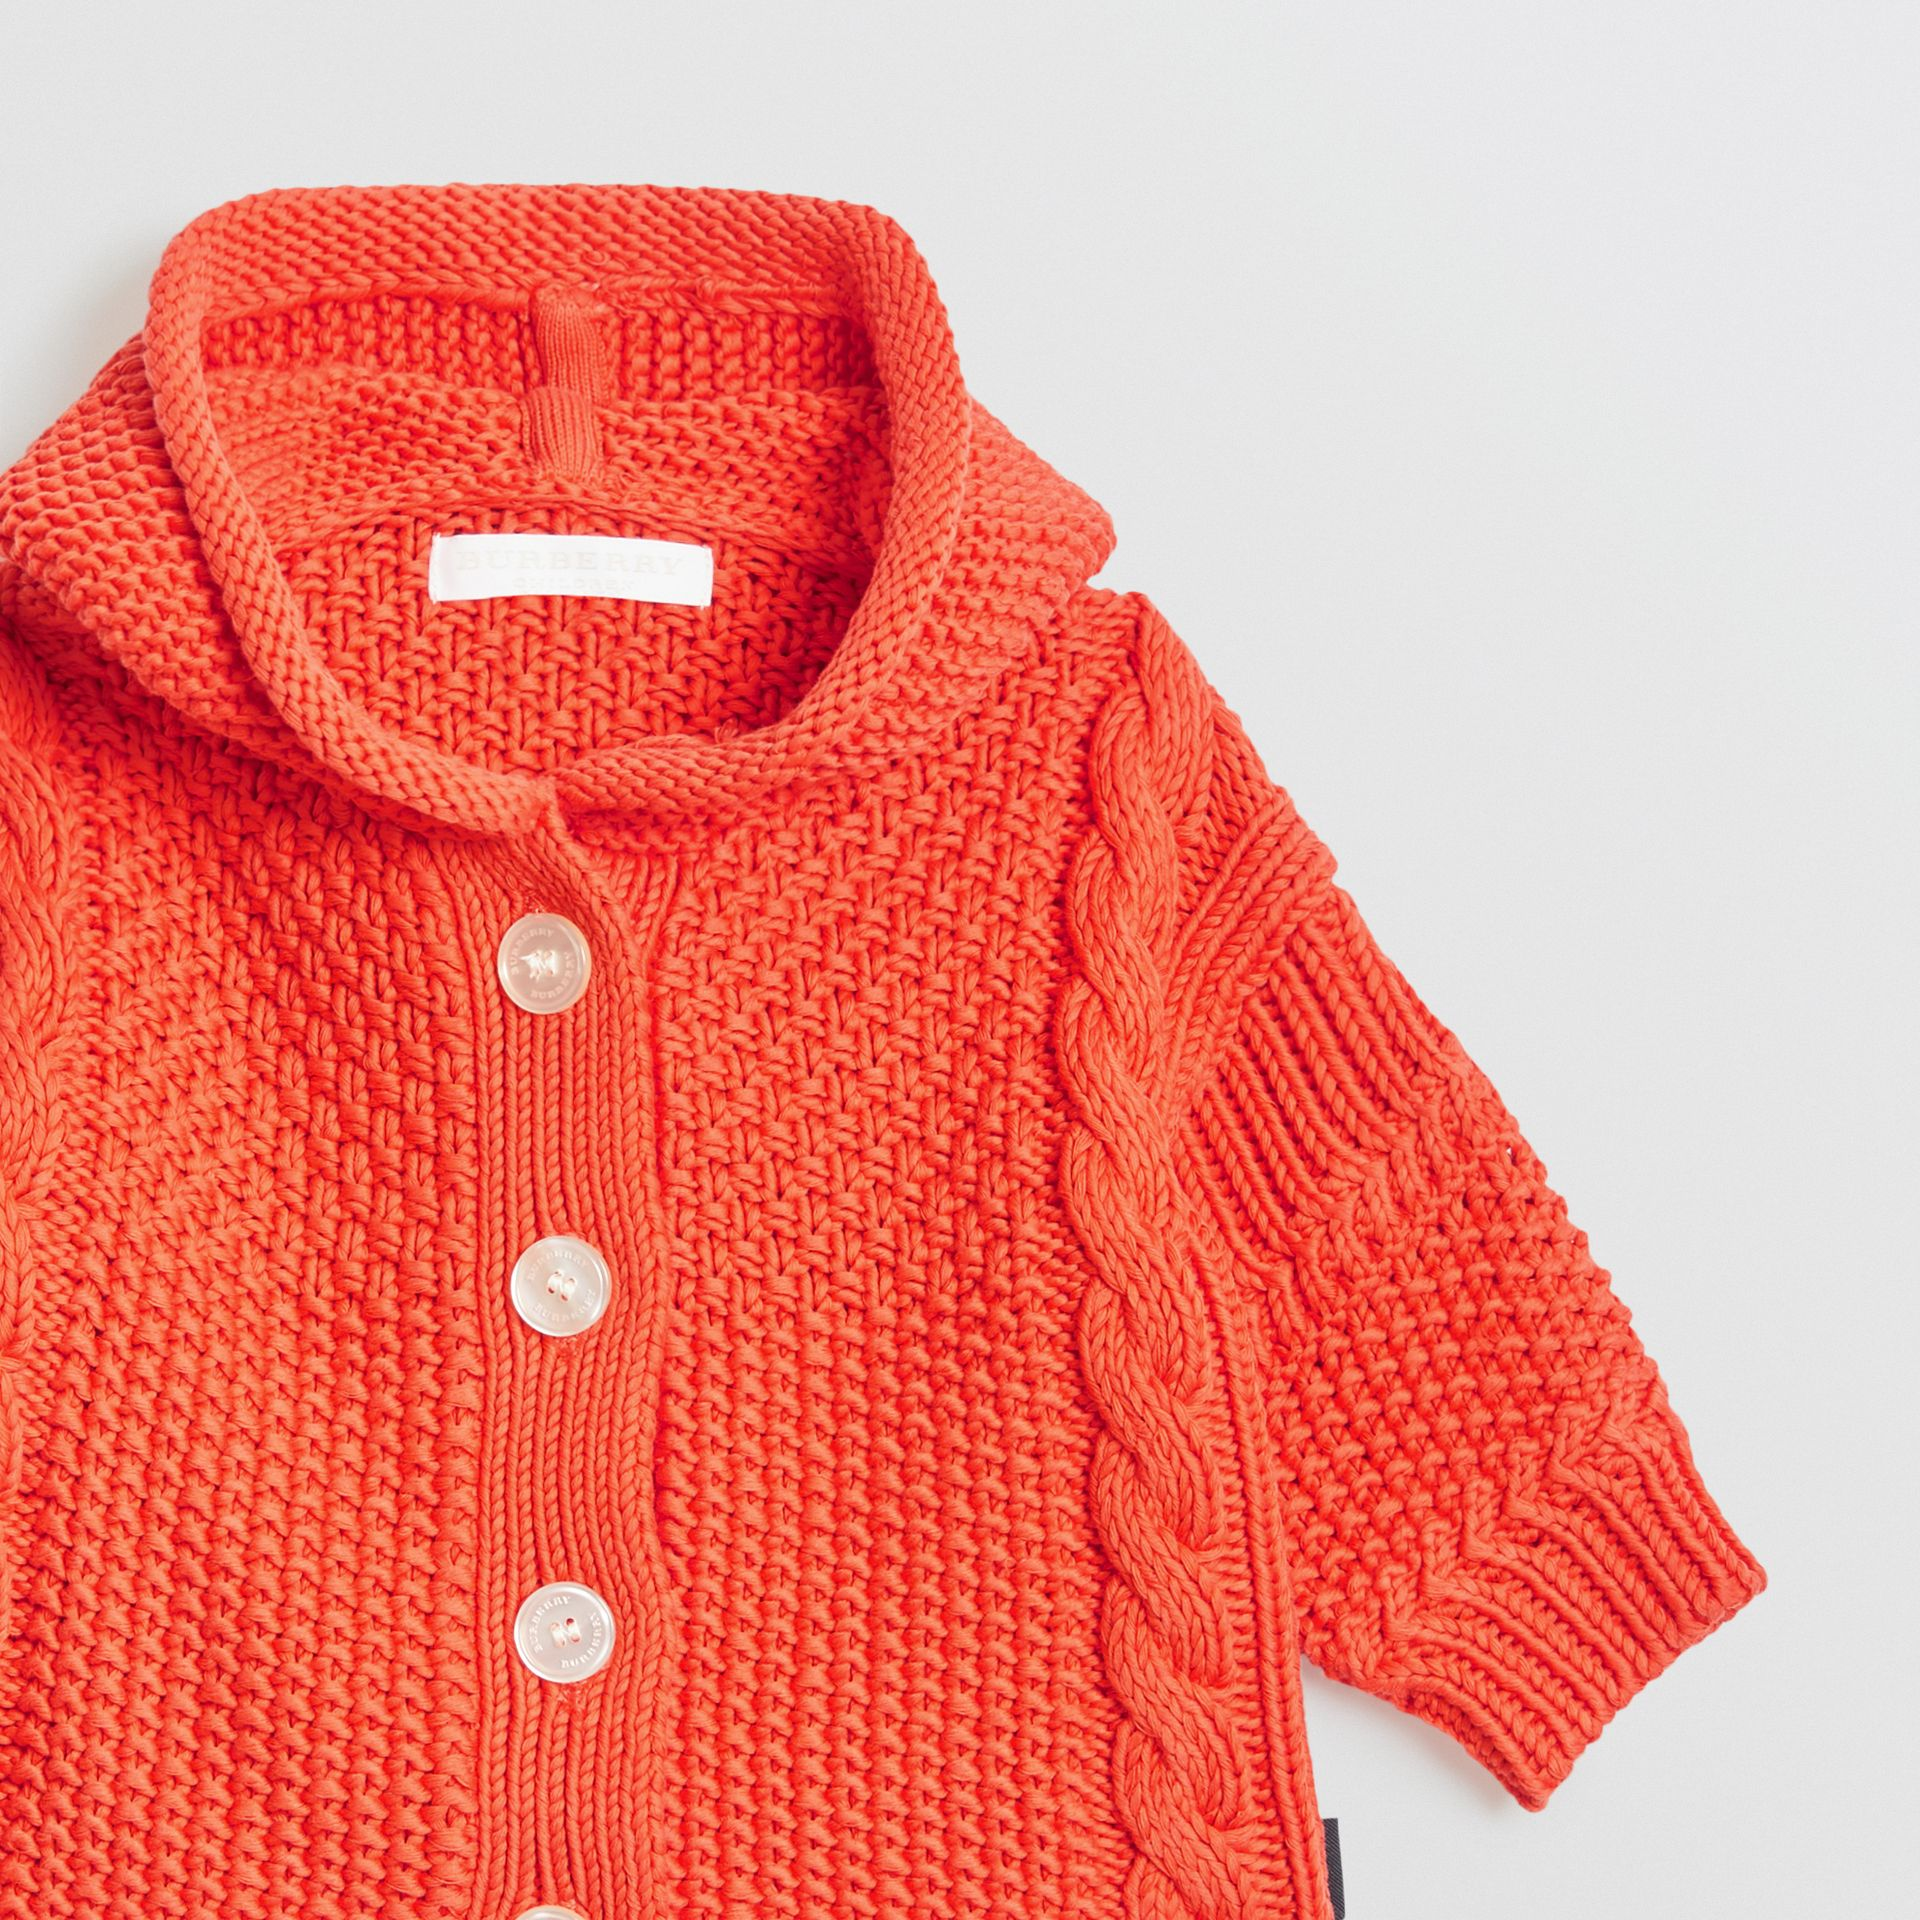 Contrast Knit Cotton Hooded Jacket in Orange Red - Children | Burberry - gallery image 4